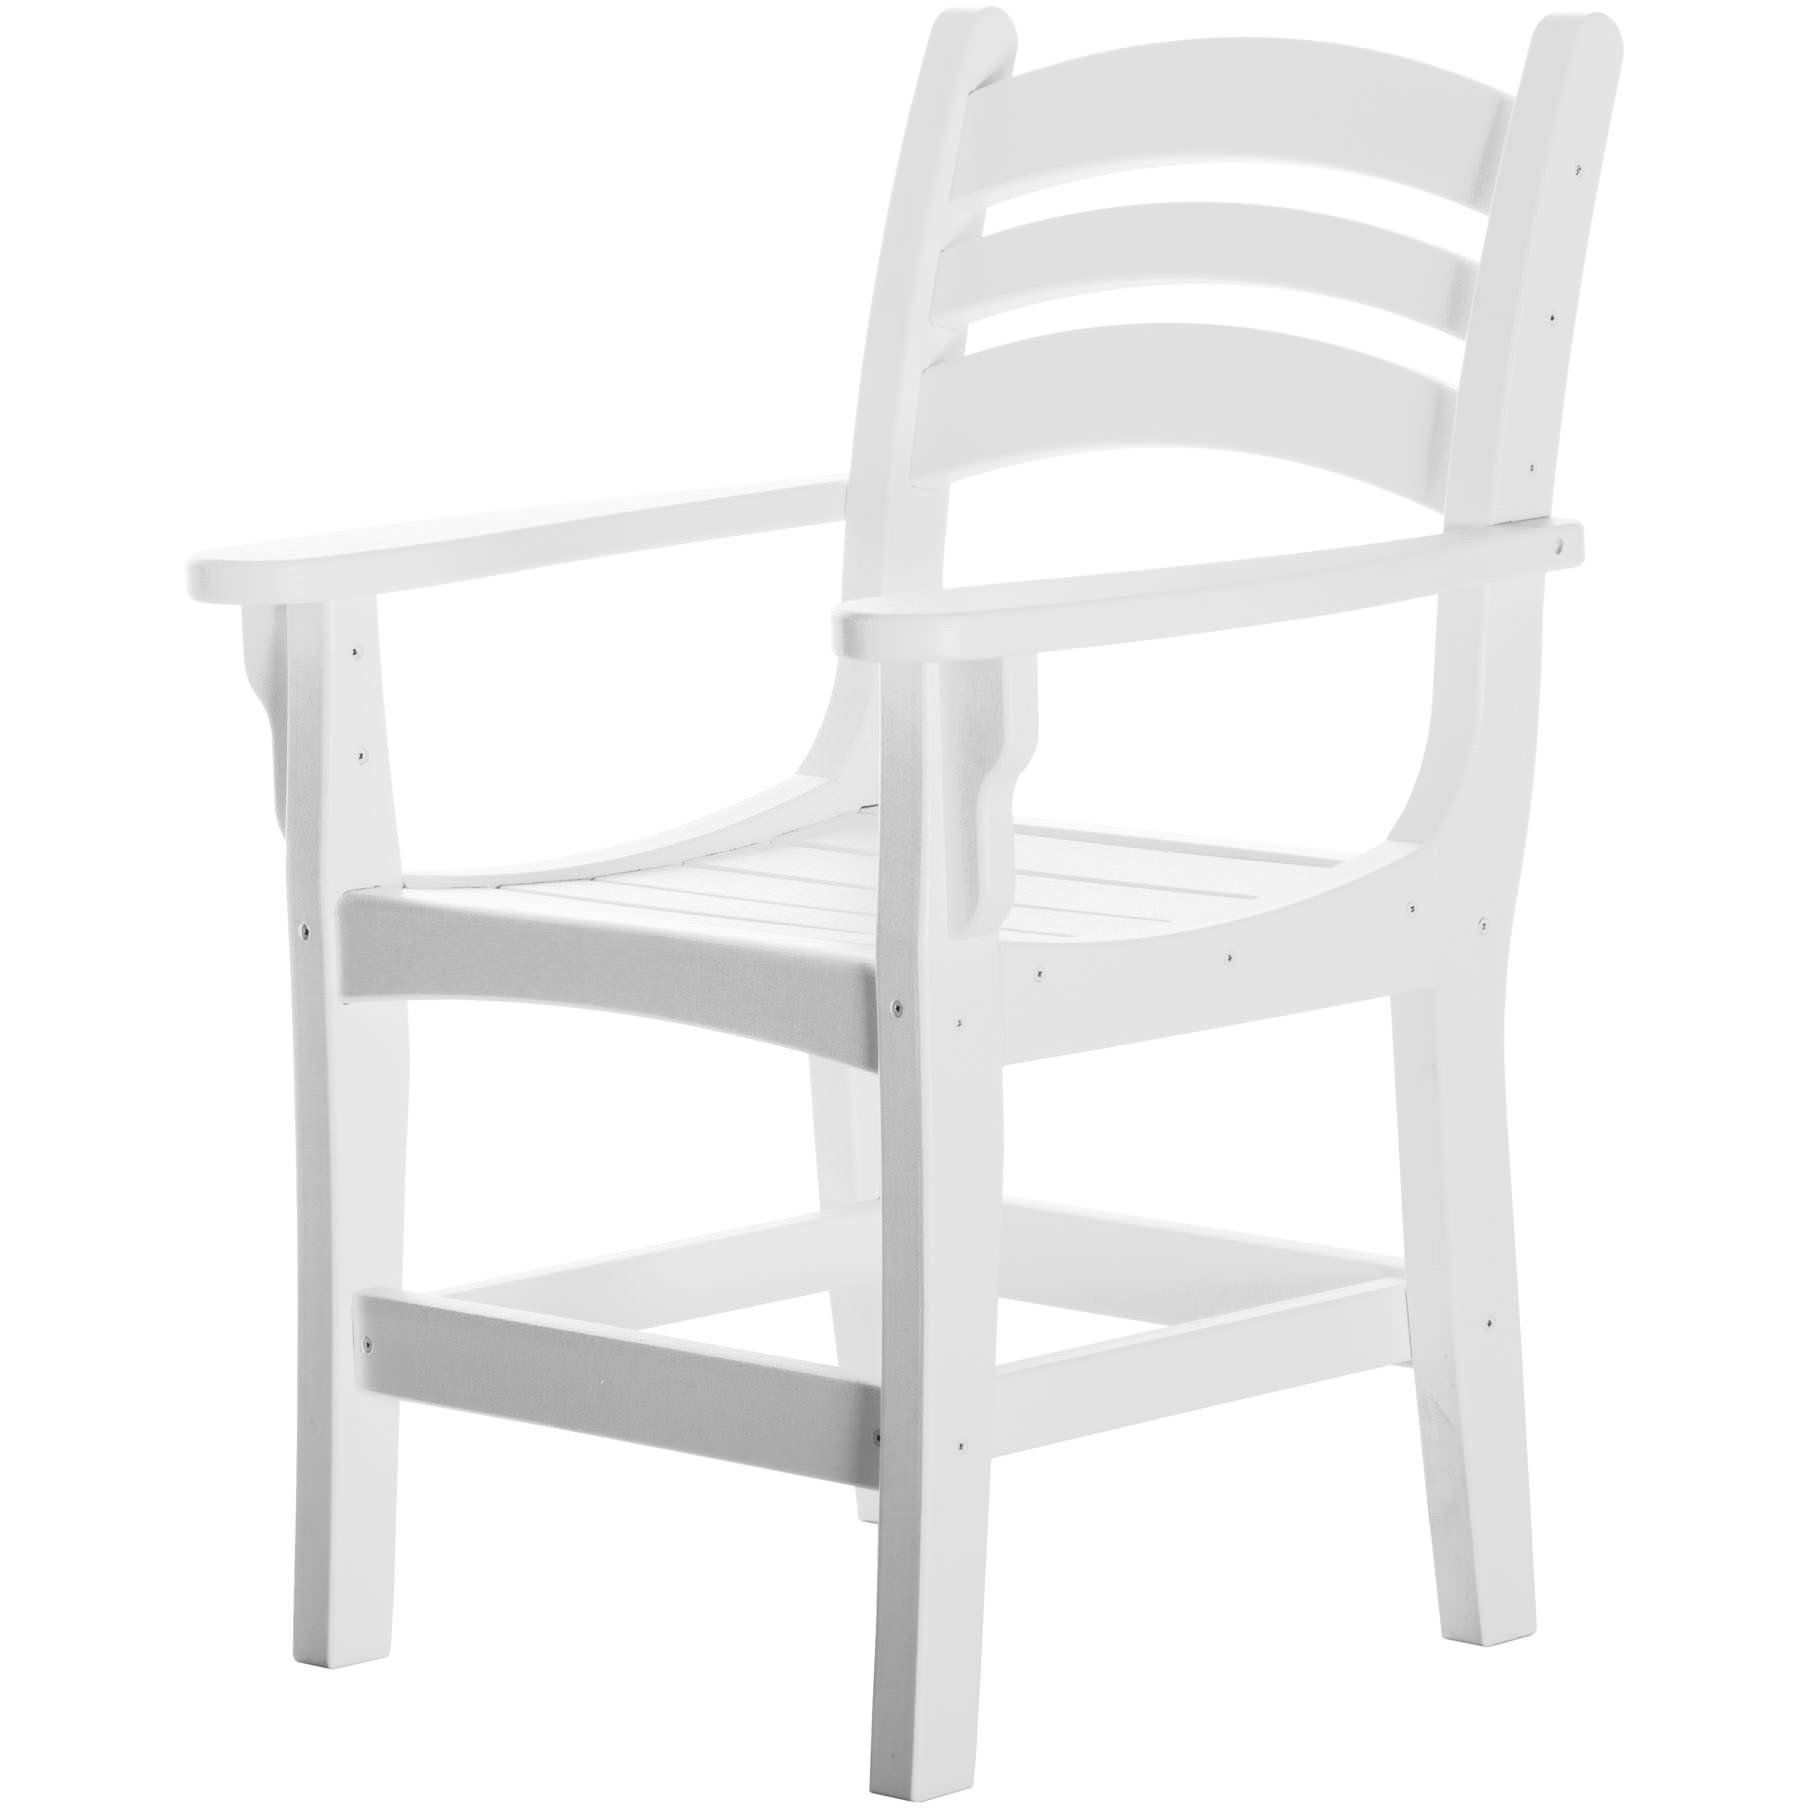 Pawleys Island Durawood Casual Dining Chair With Arms